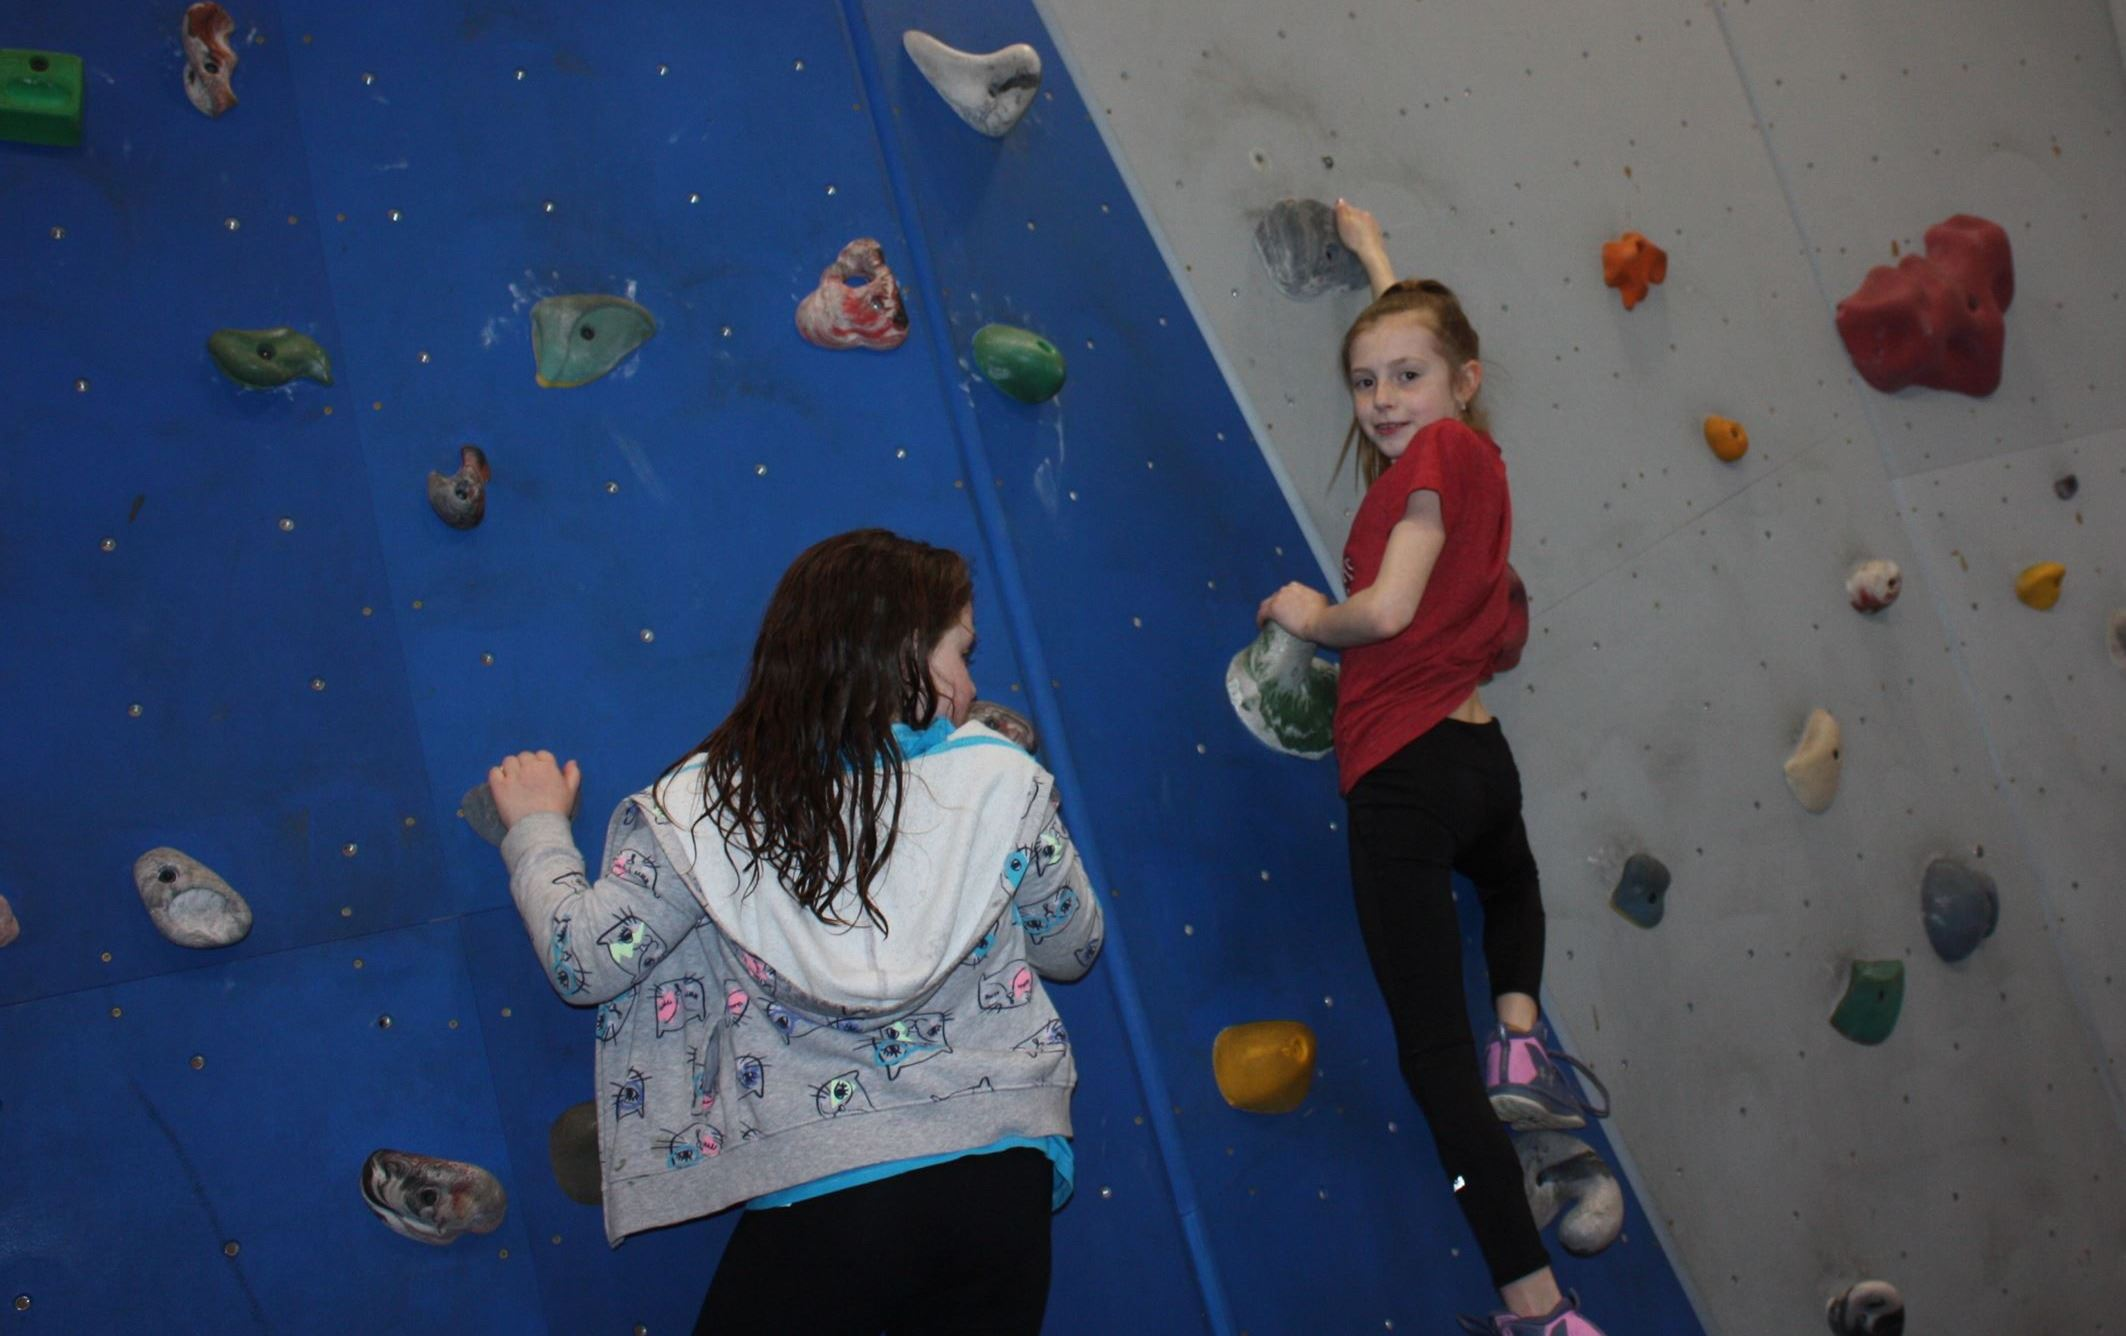 girls climbing on bouldering wall